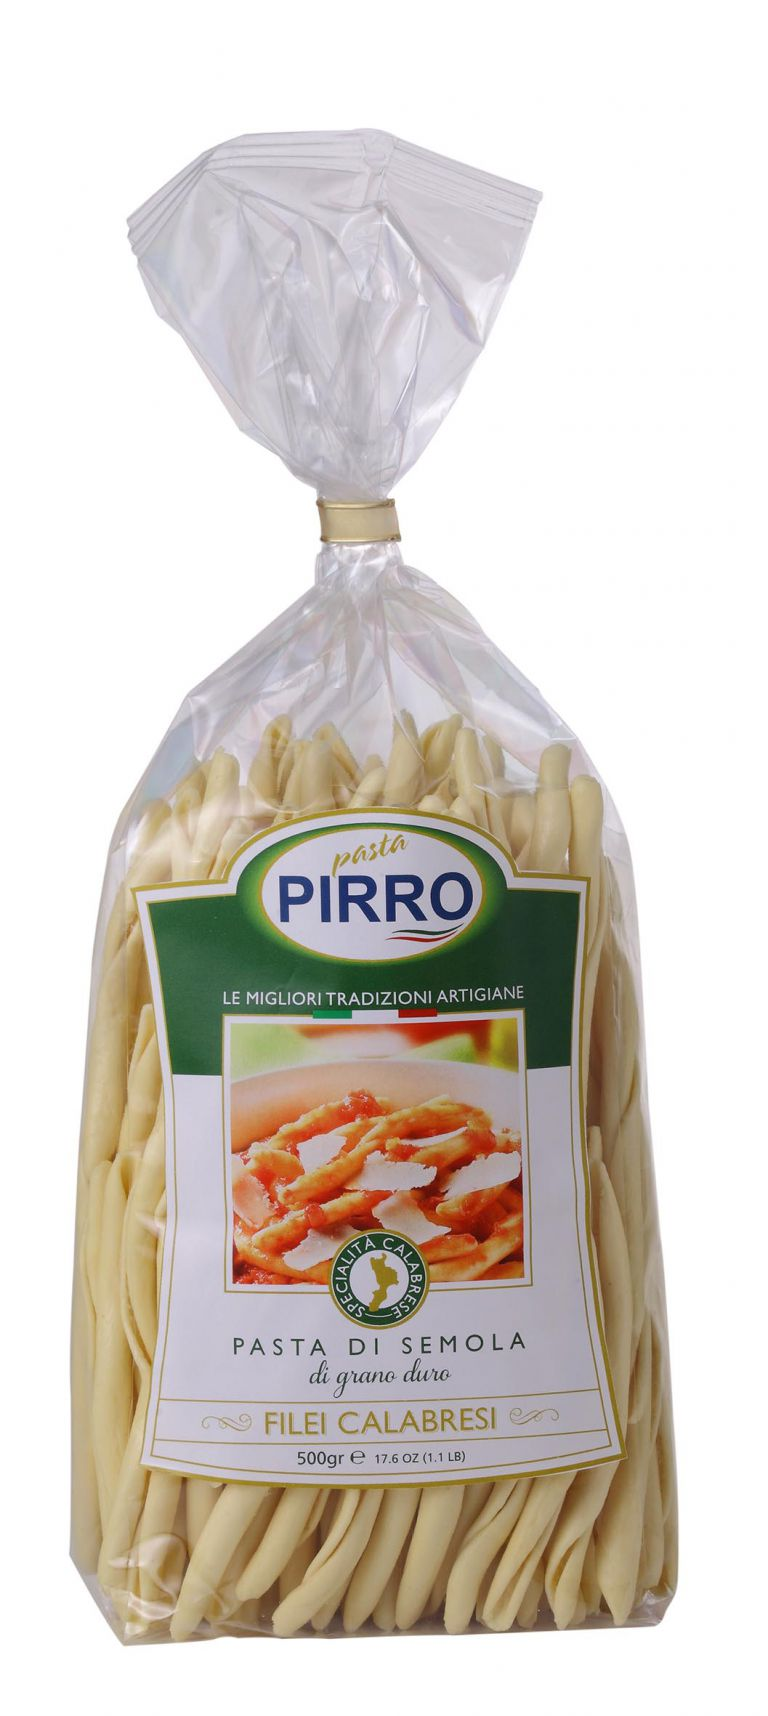 PIRRO FILEI CALABRESE 500GR